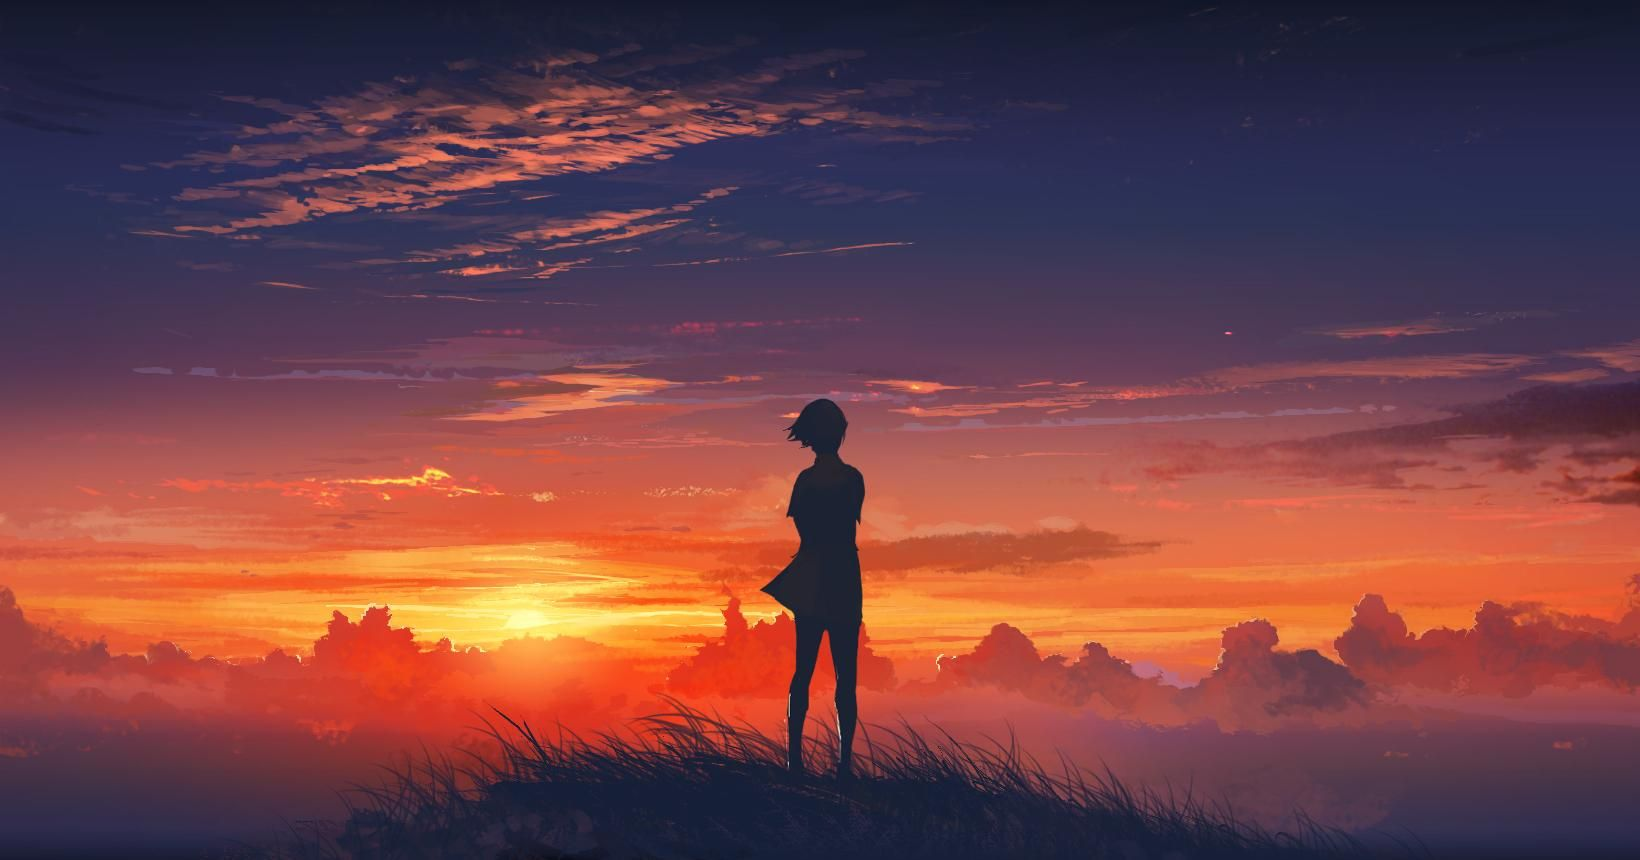 sunset anime | beautiful scenery | pinterest | sunset, anime and scenery